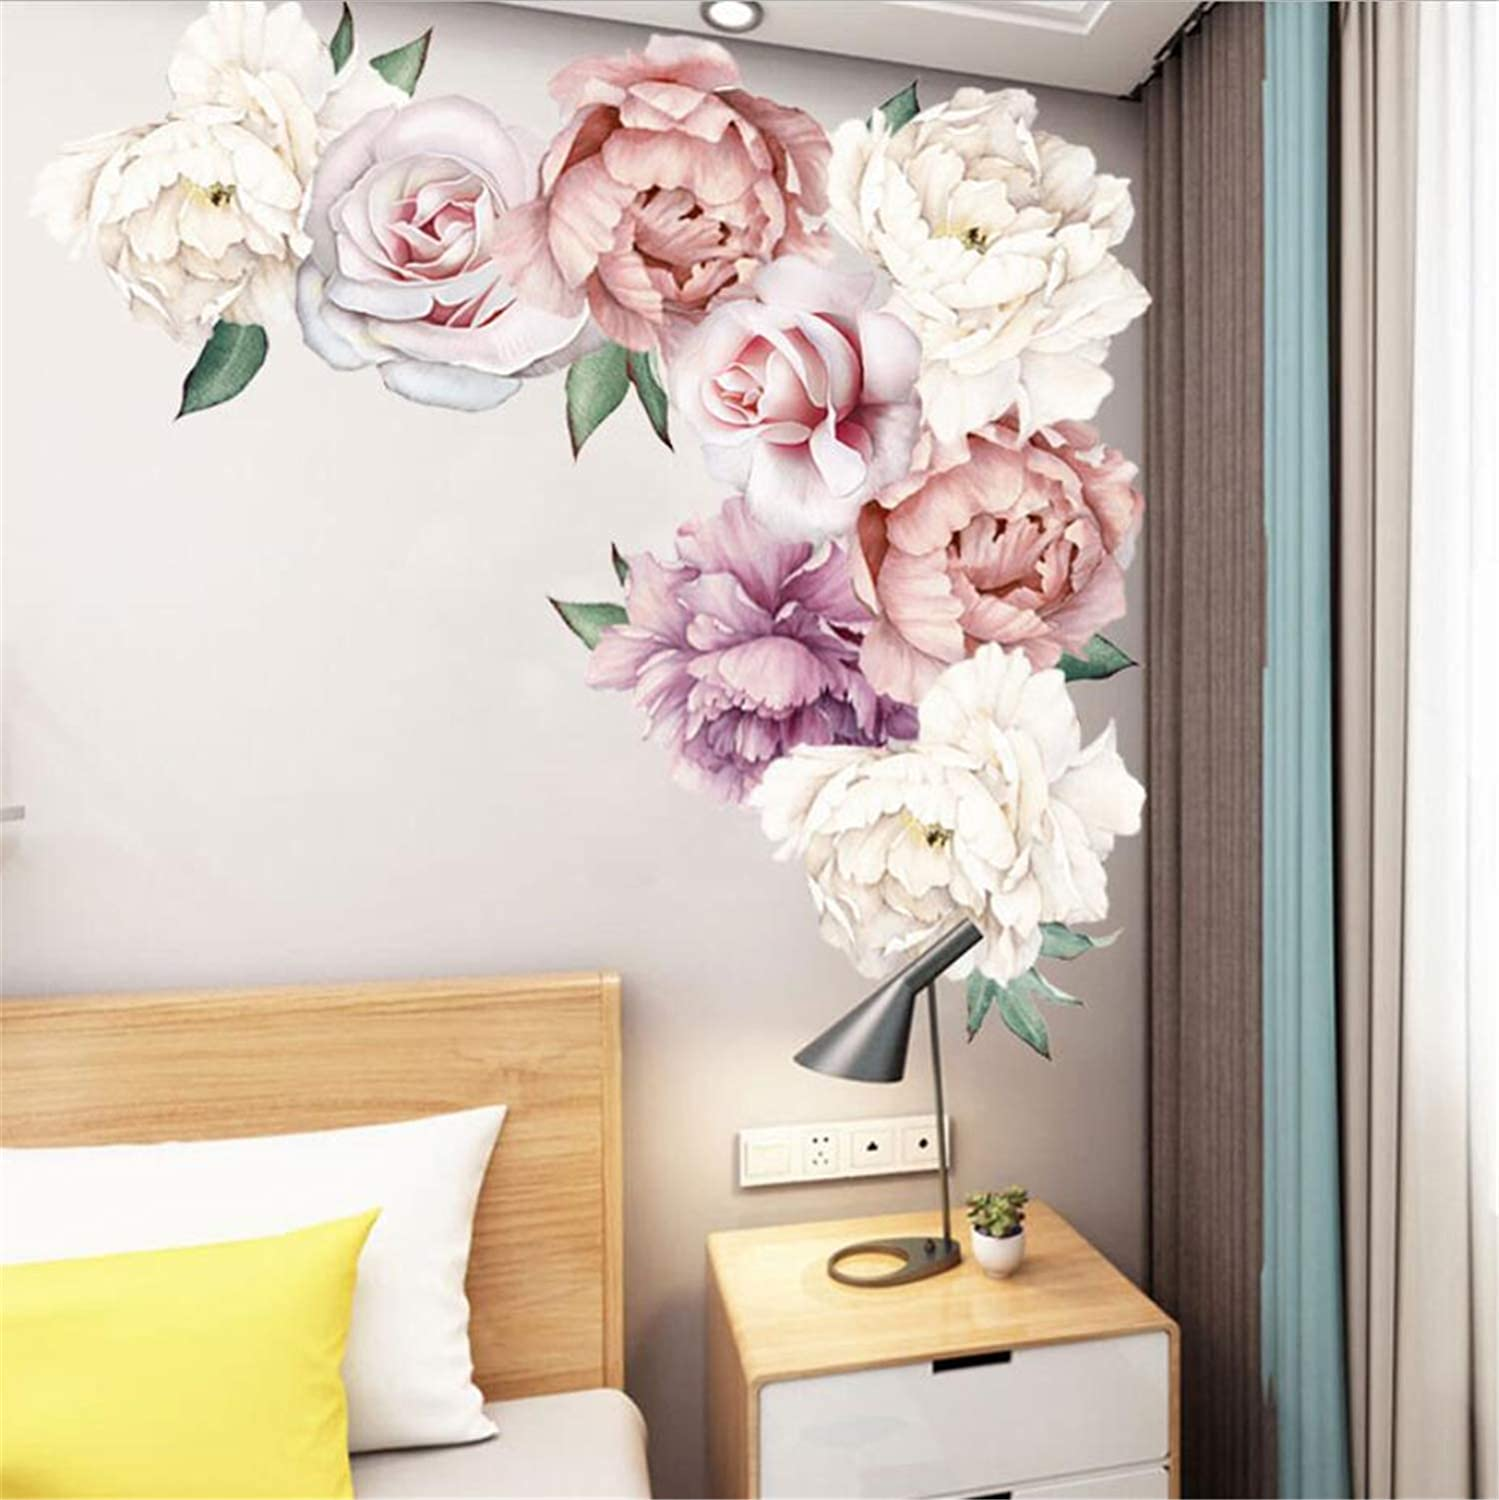 Peony Rose Flowers Wall Stickers Pink Floral Wall Decals Vintage Removable Wall Decor PVC Floral Wall Sticker Mural for Nursery Living Room